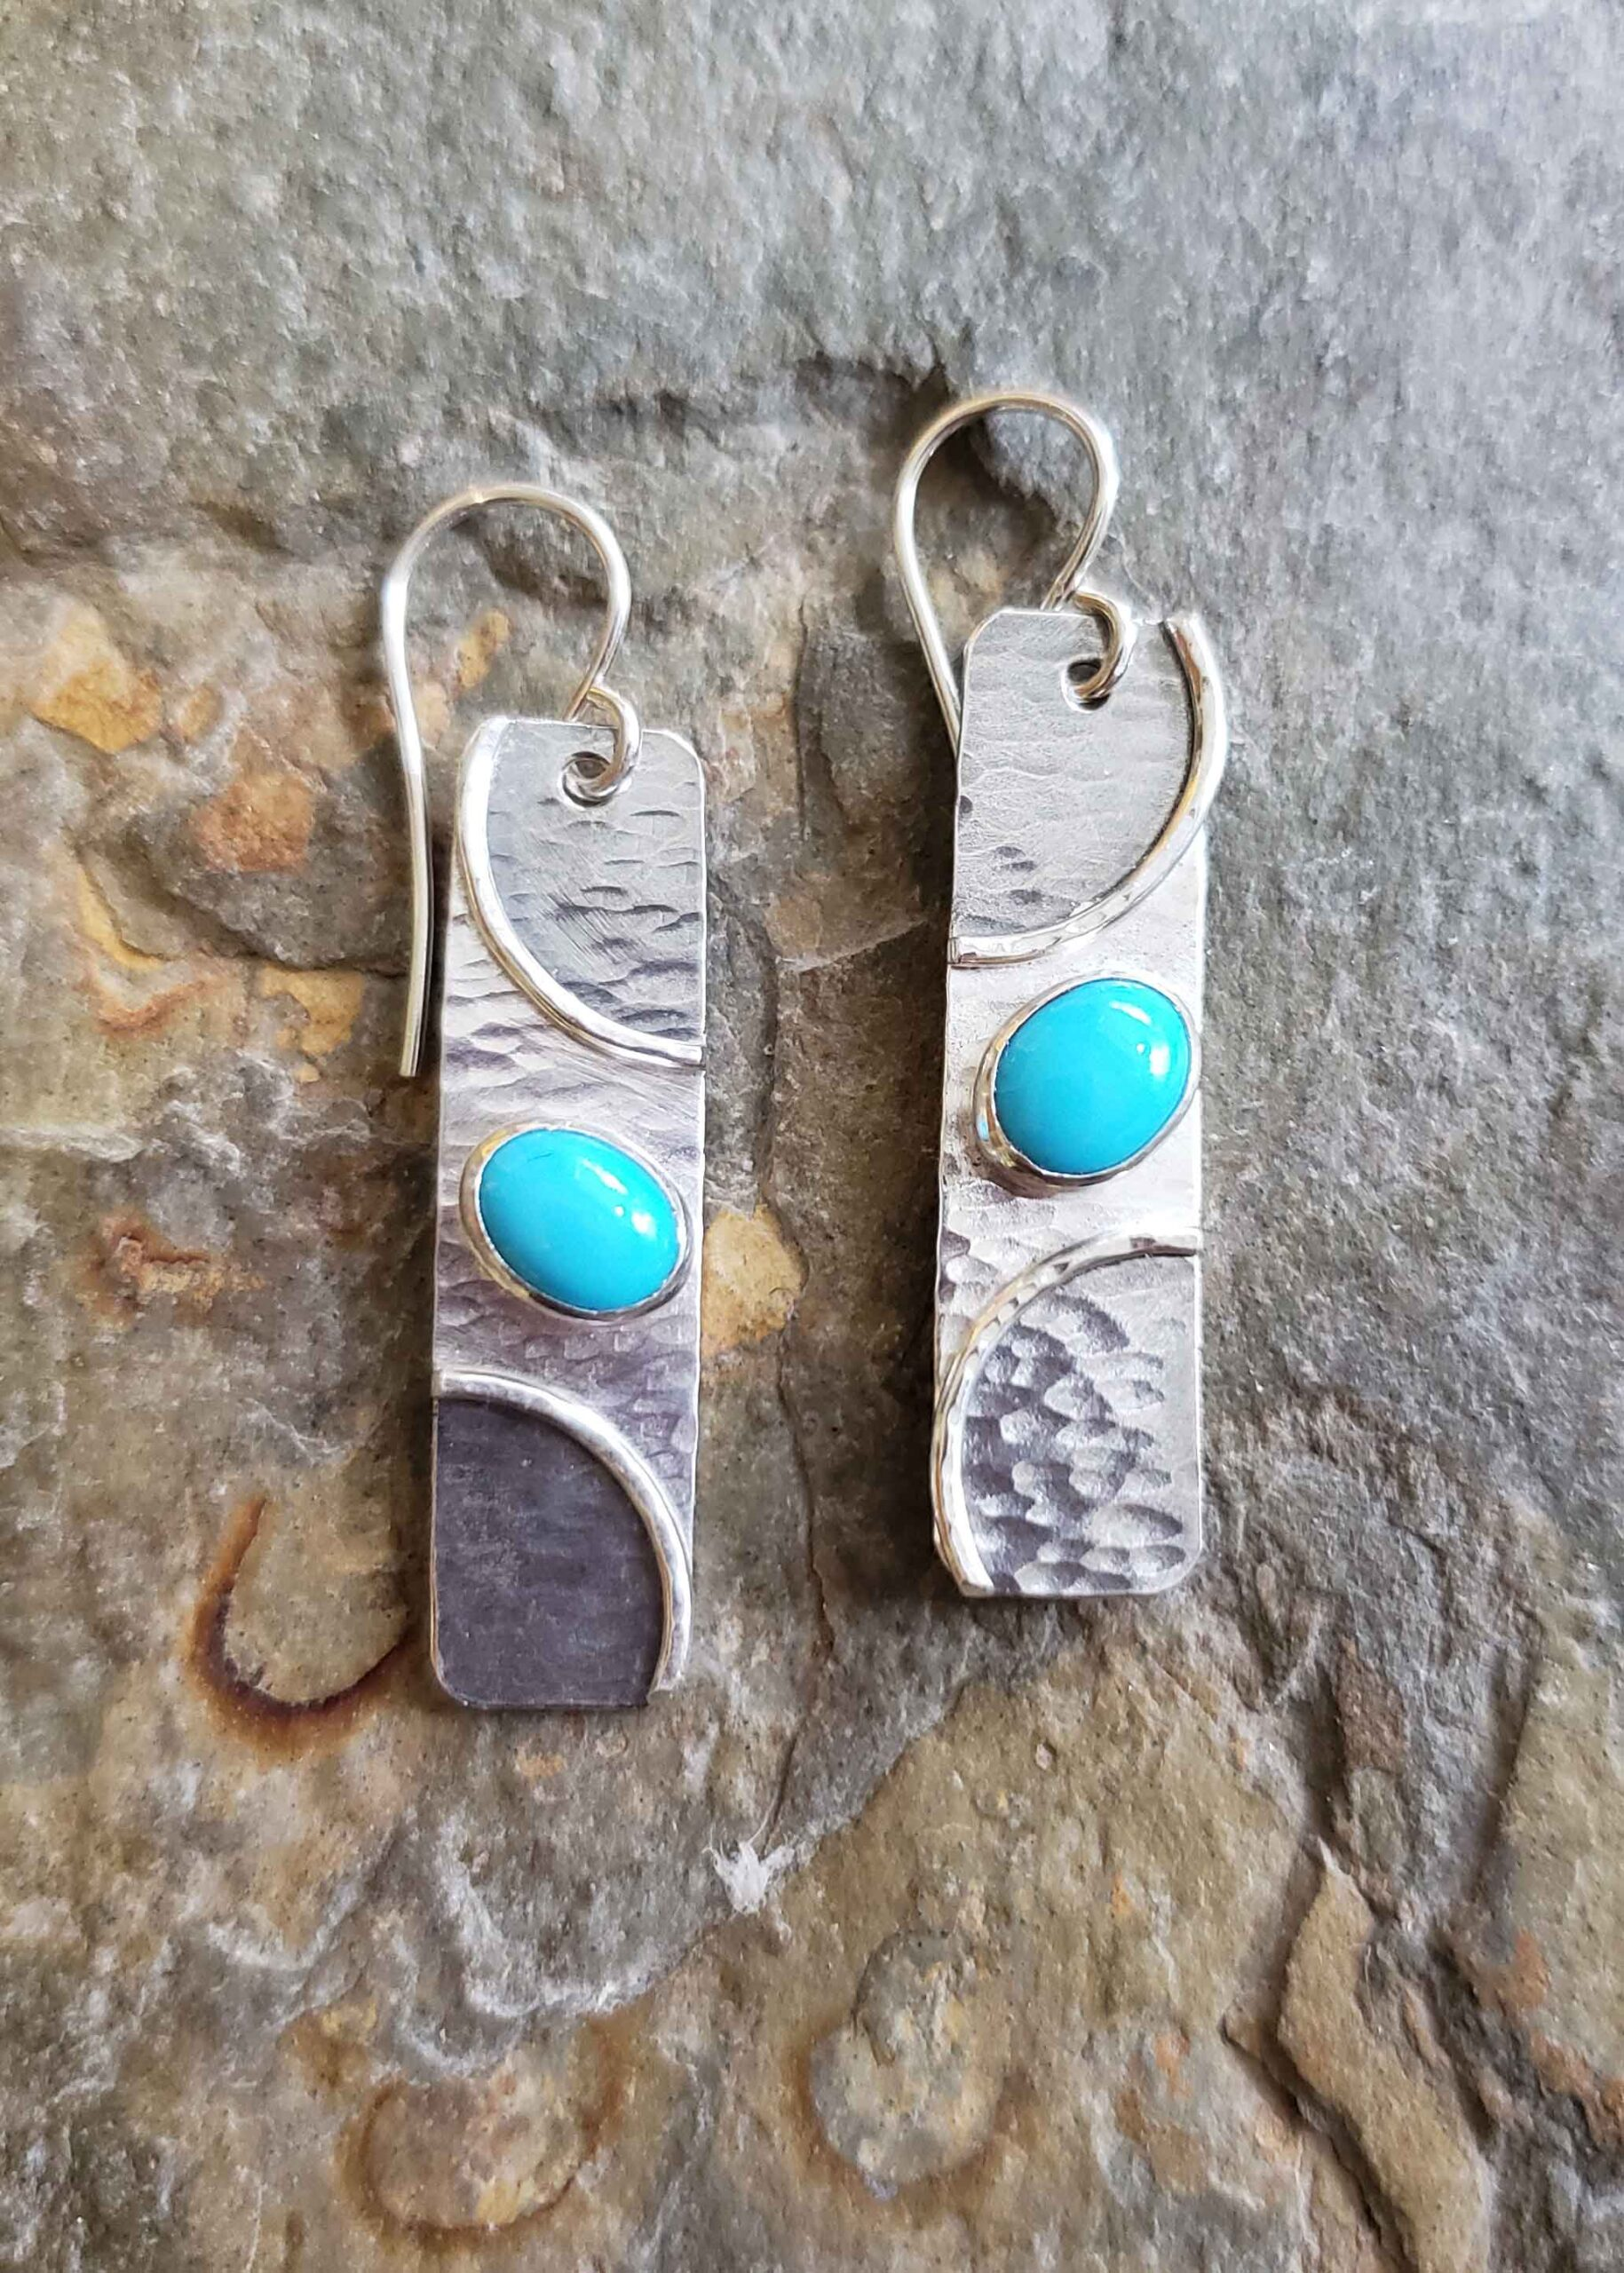 Silver and turquoise earrings by Dona Miller.